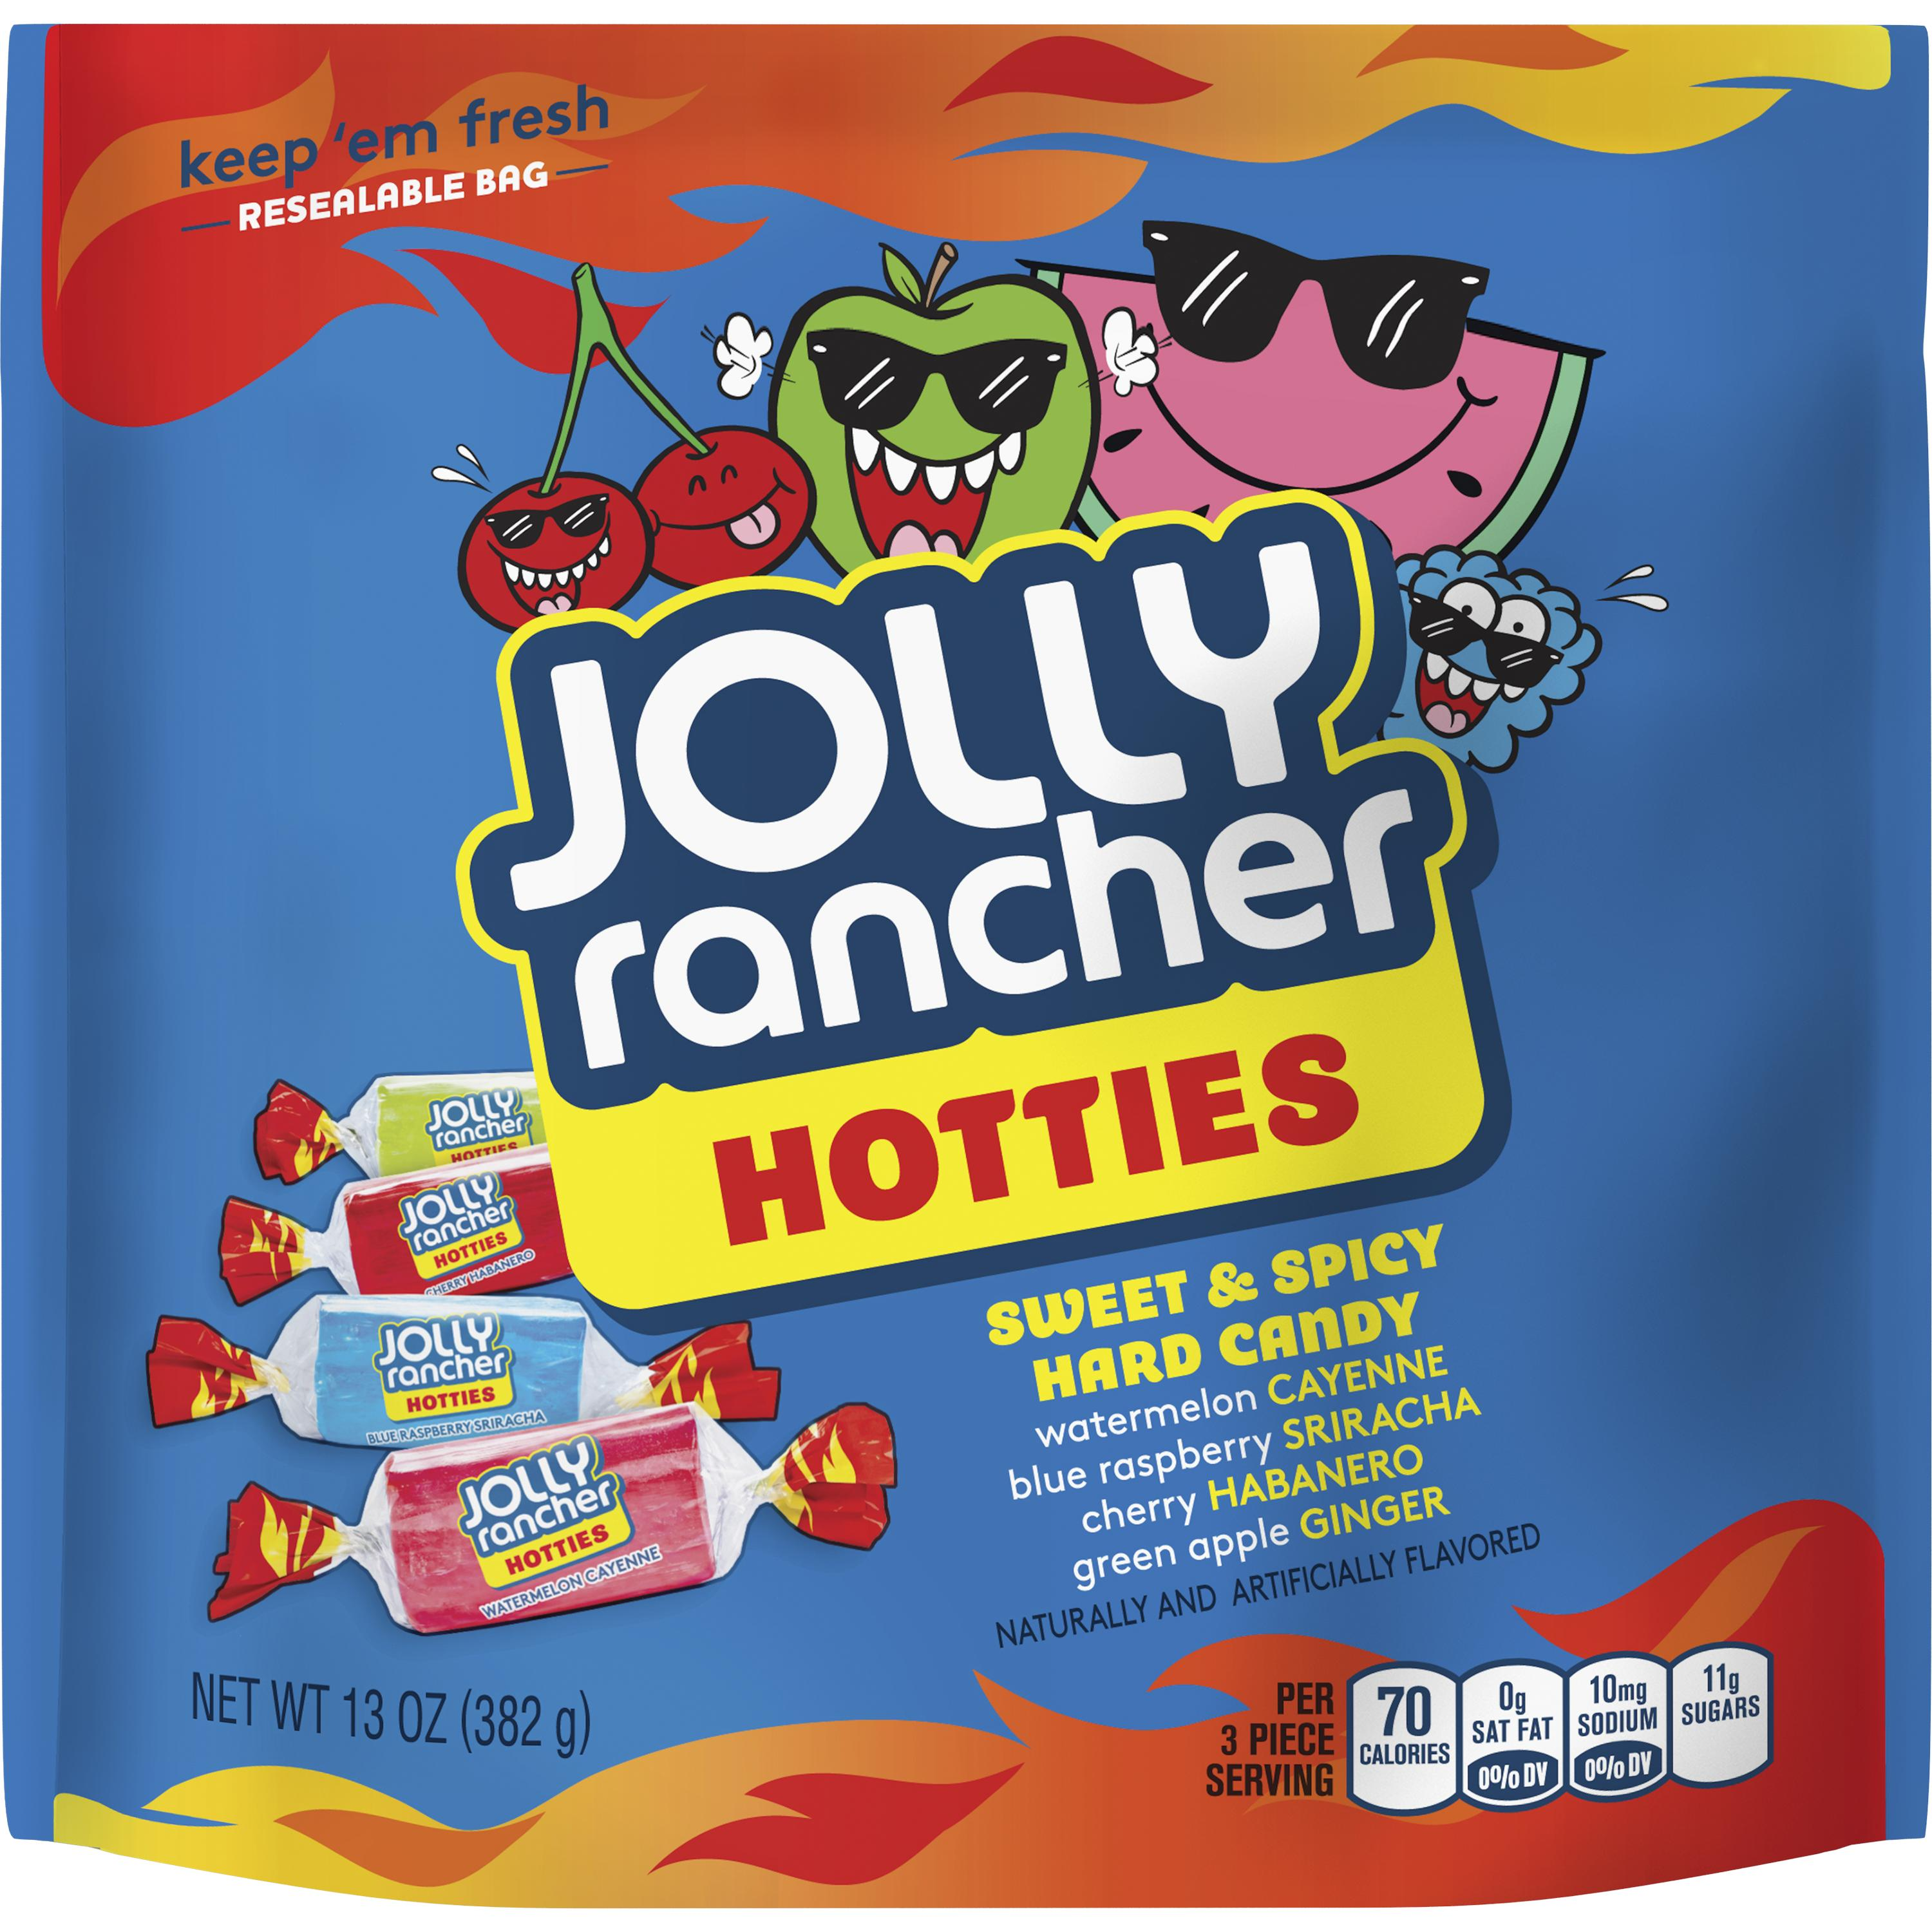 (4 Pack) Jolly Rancher, Hotties Sweet & Spicy Hard Candy, 13 oz